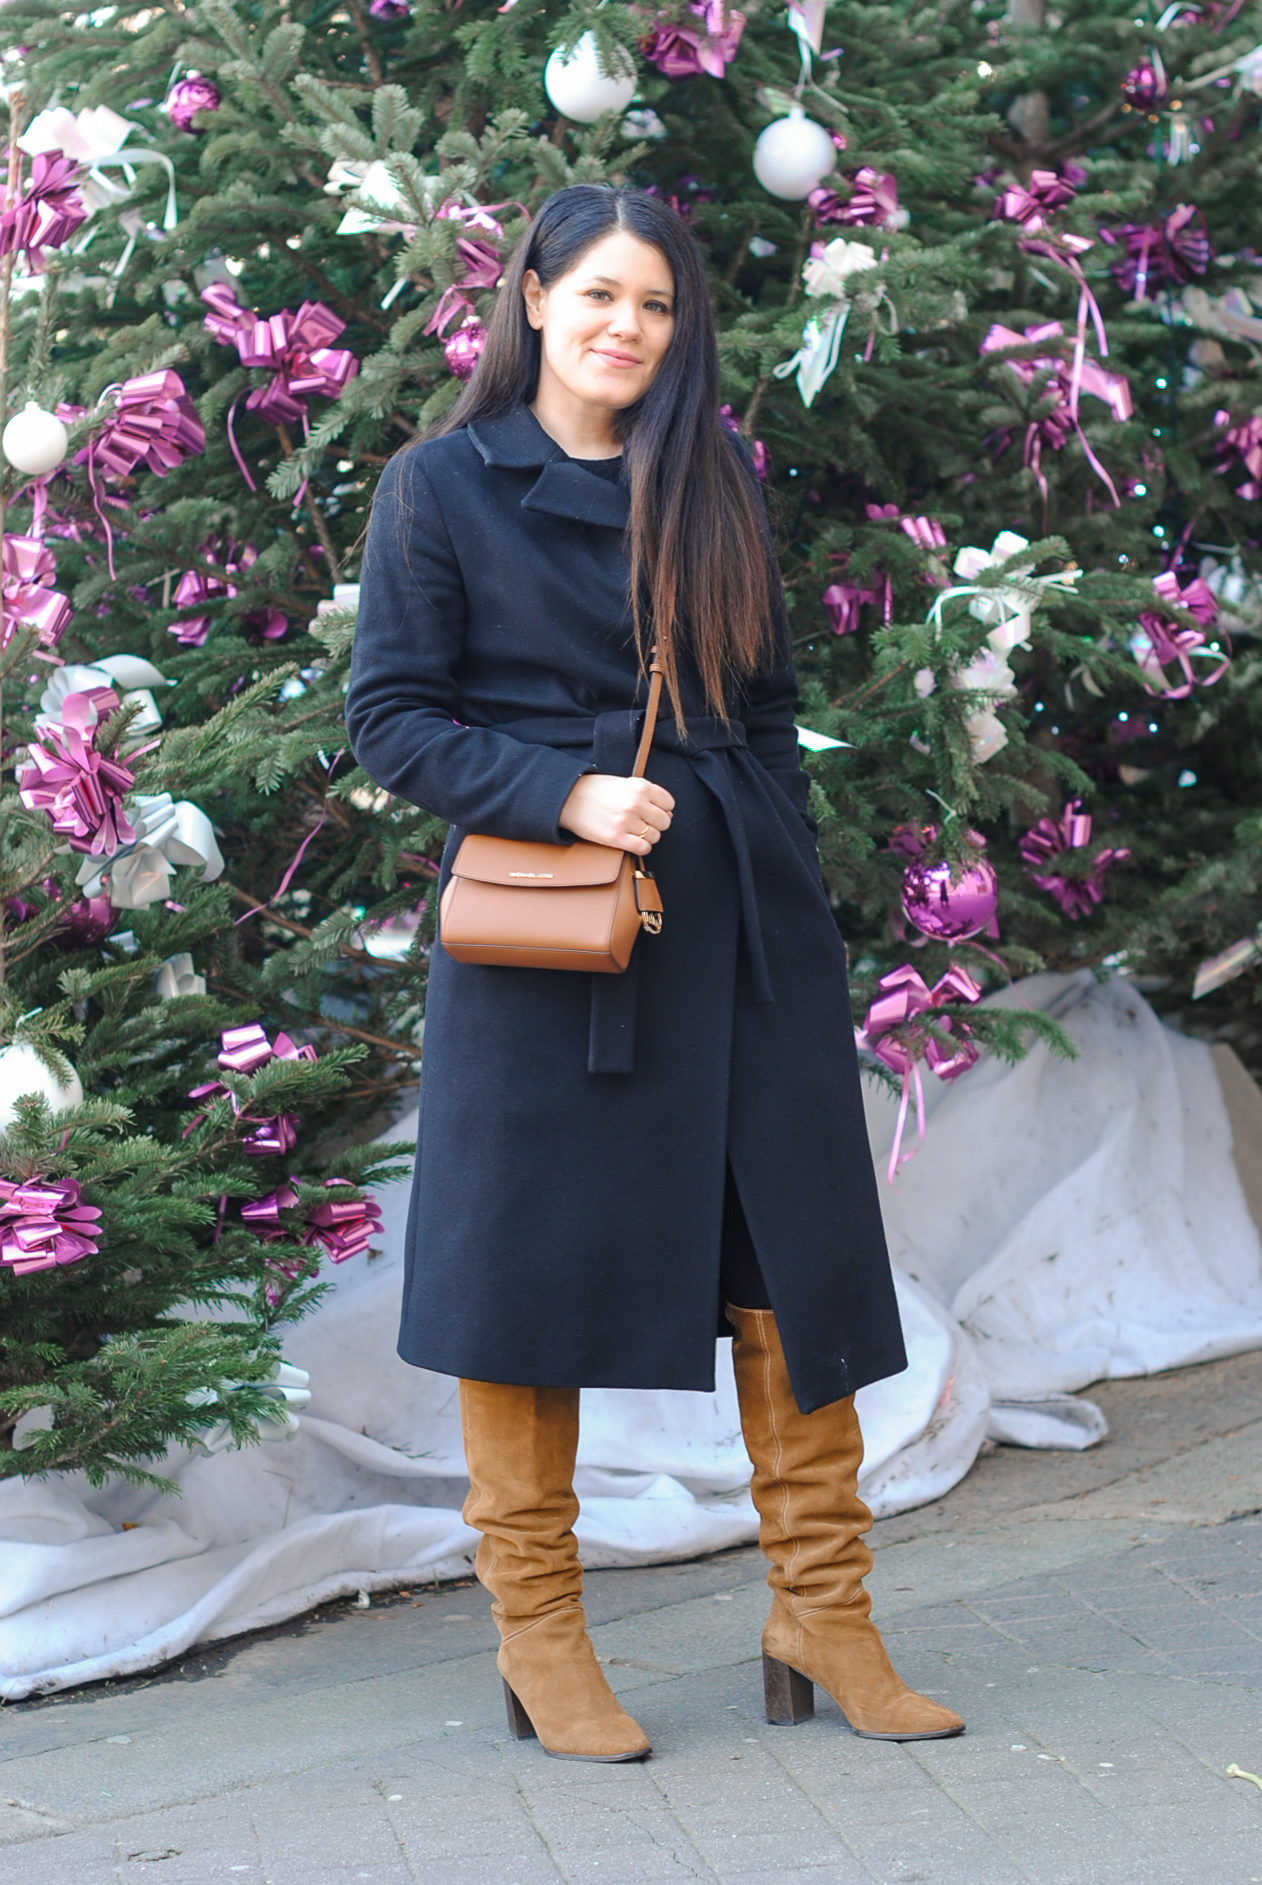 20210110-OUTFIT-BOLSO-MICHAEL KORS-04